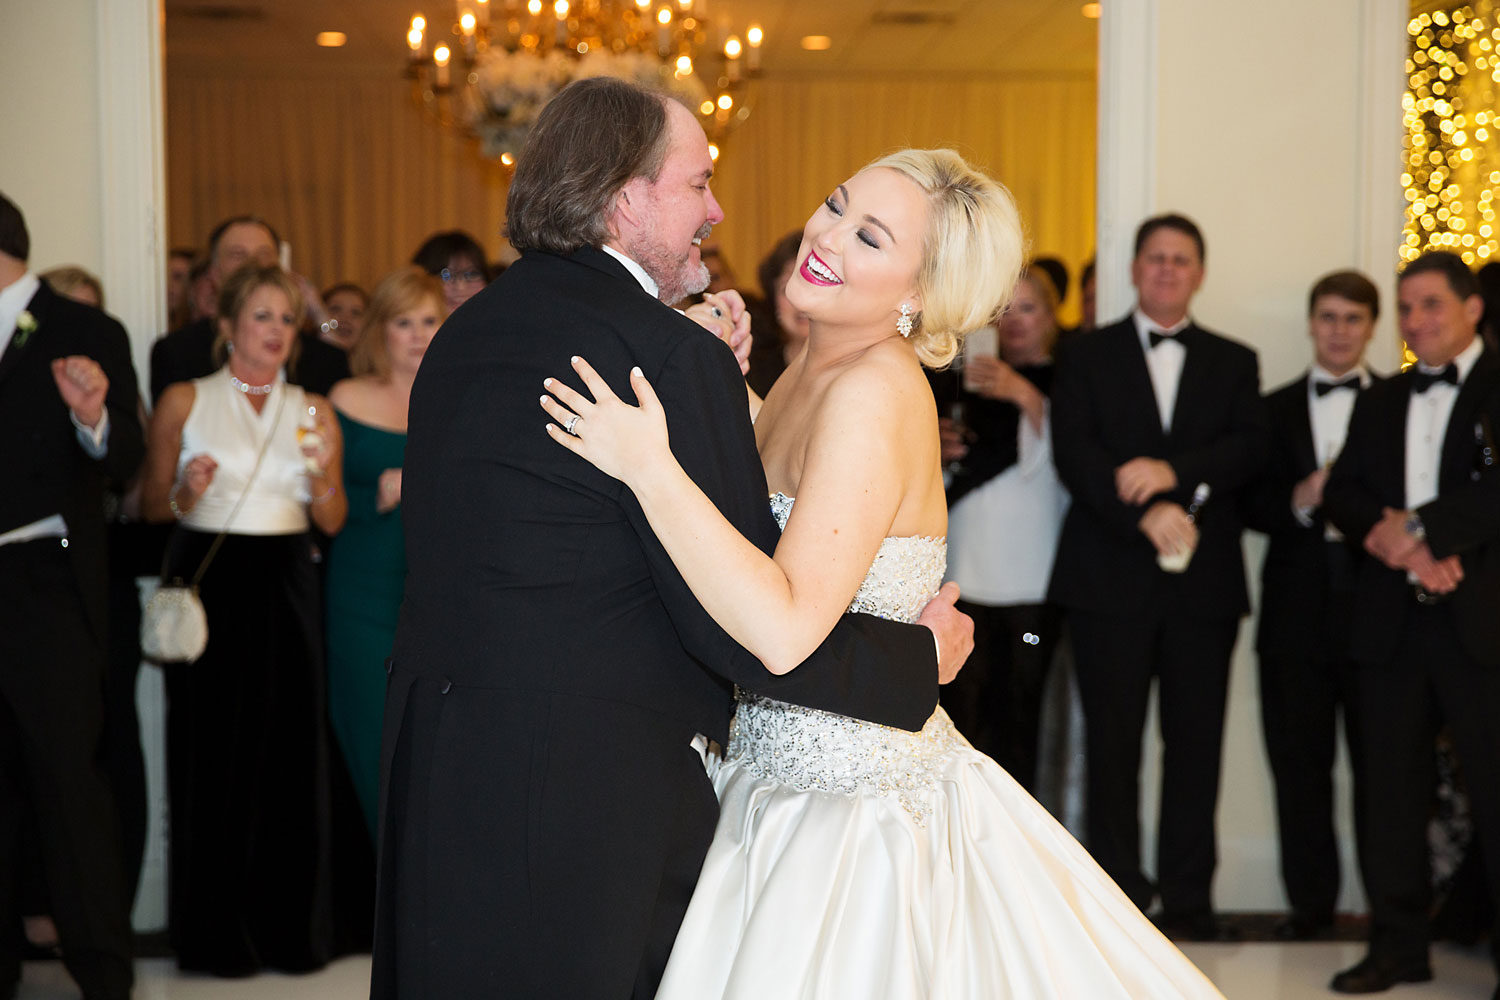 upbeat songs for father-daughter dance